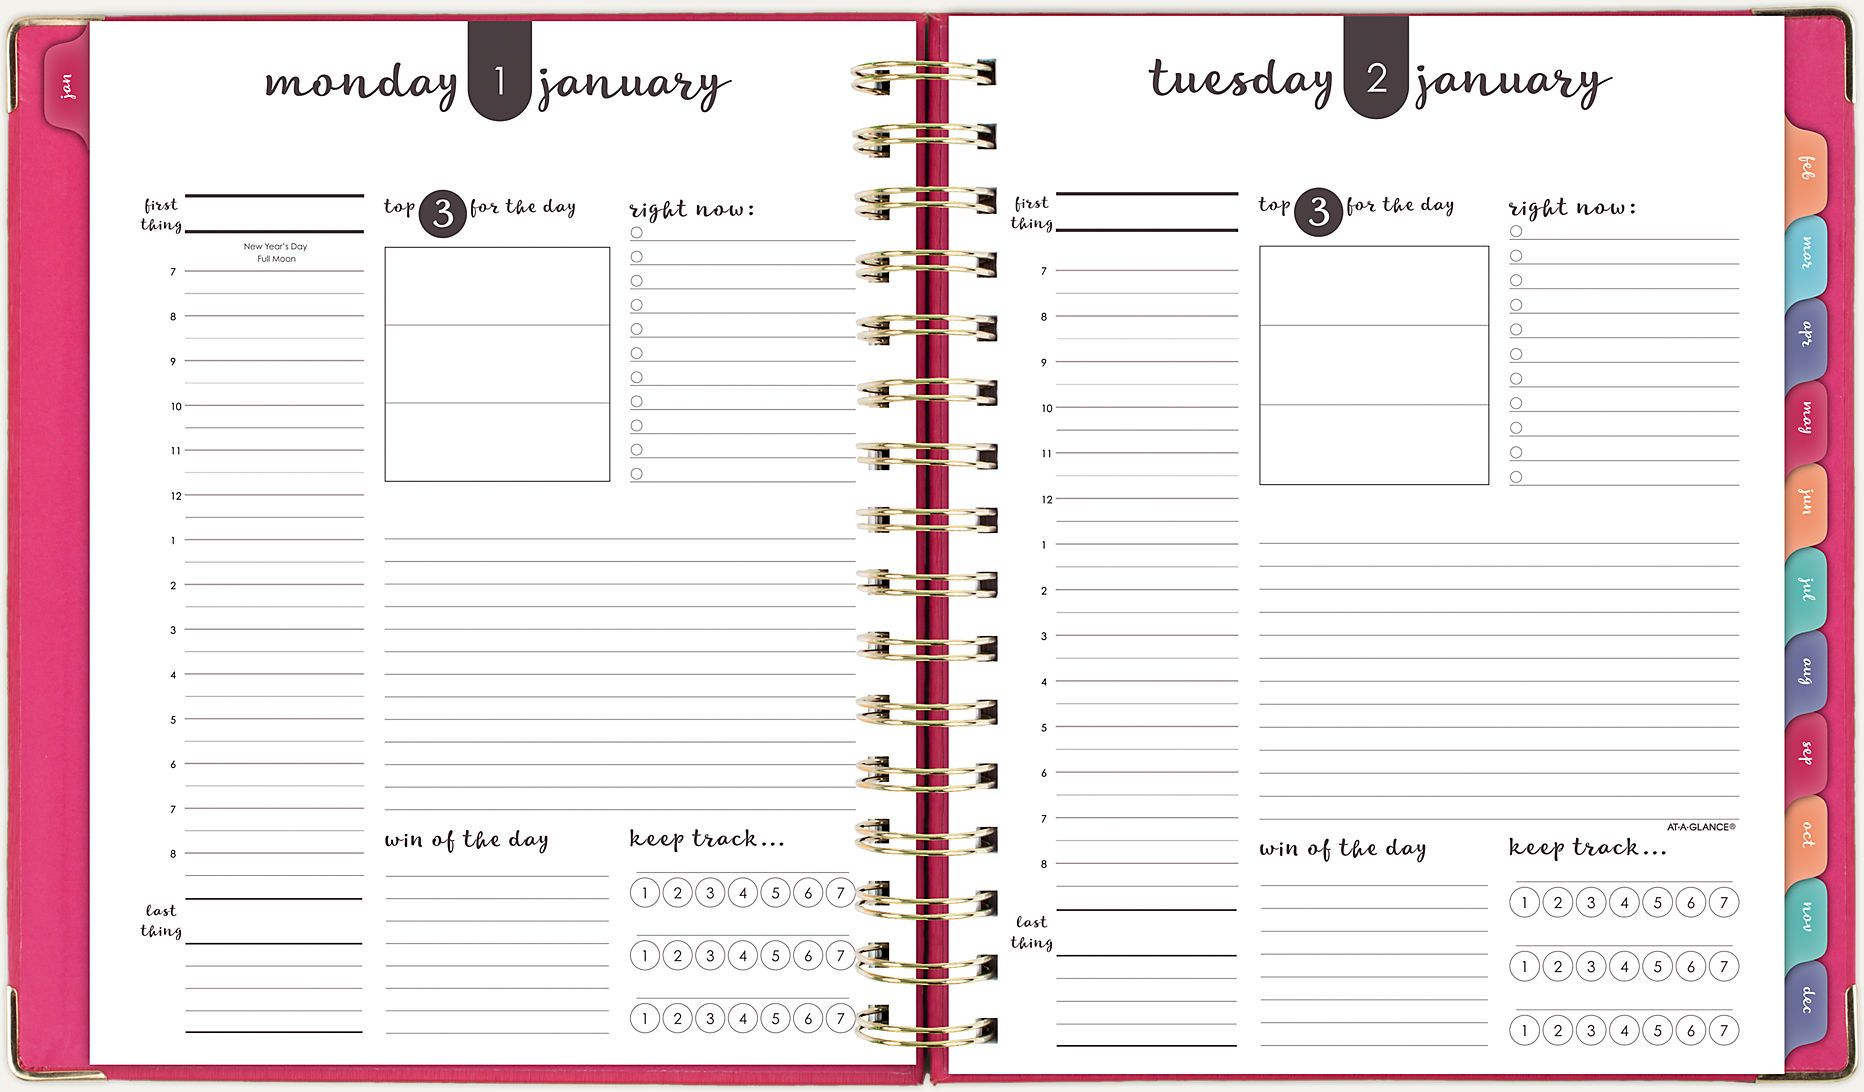 Harmony Hardcover Daily Monthly Planner 6099 806 At A